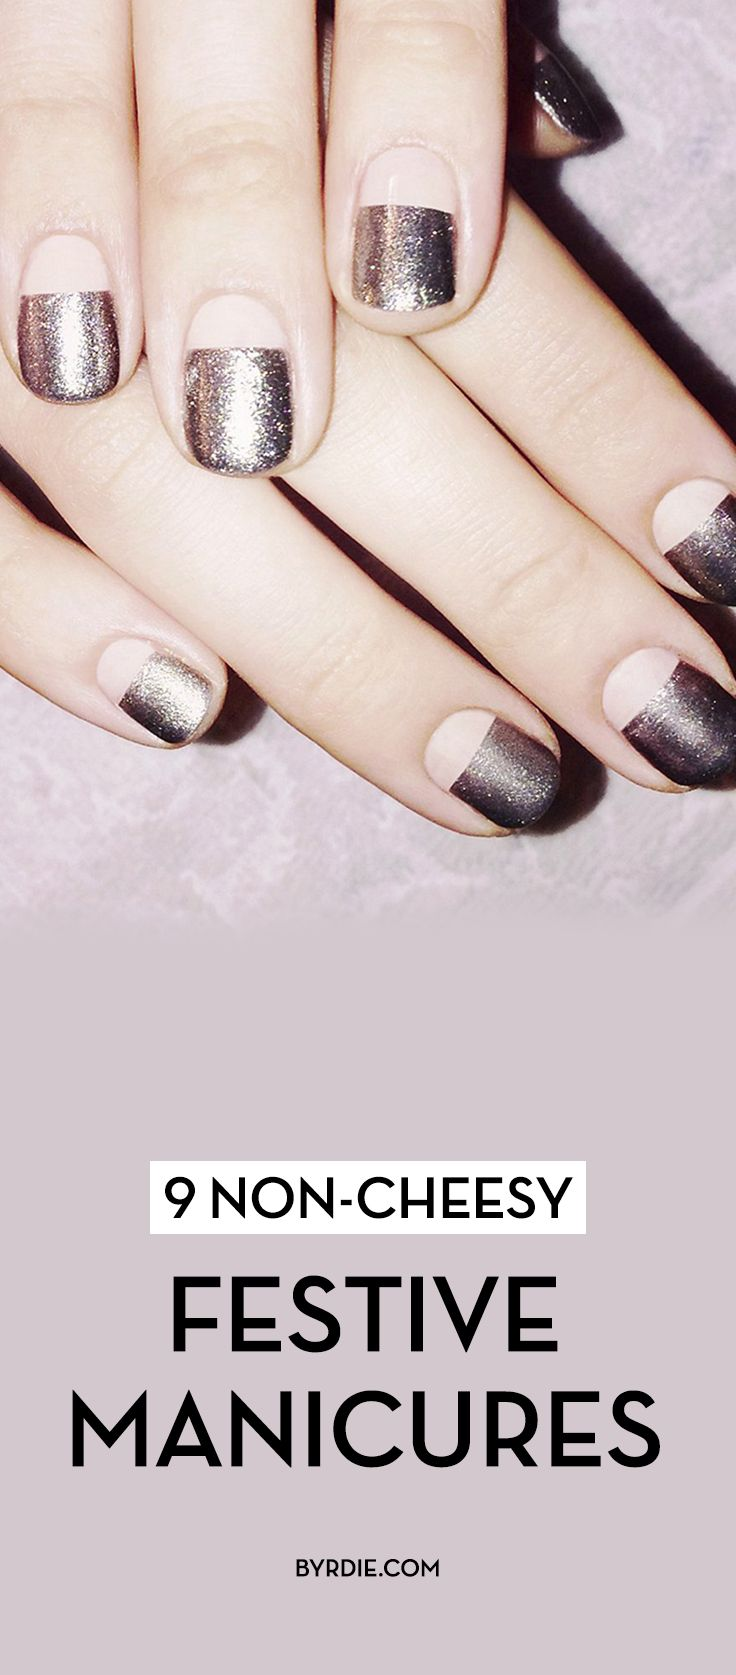 9 holiday manicures that aren't cheesy